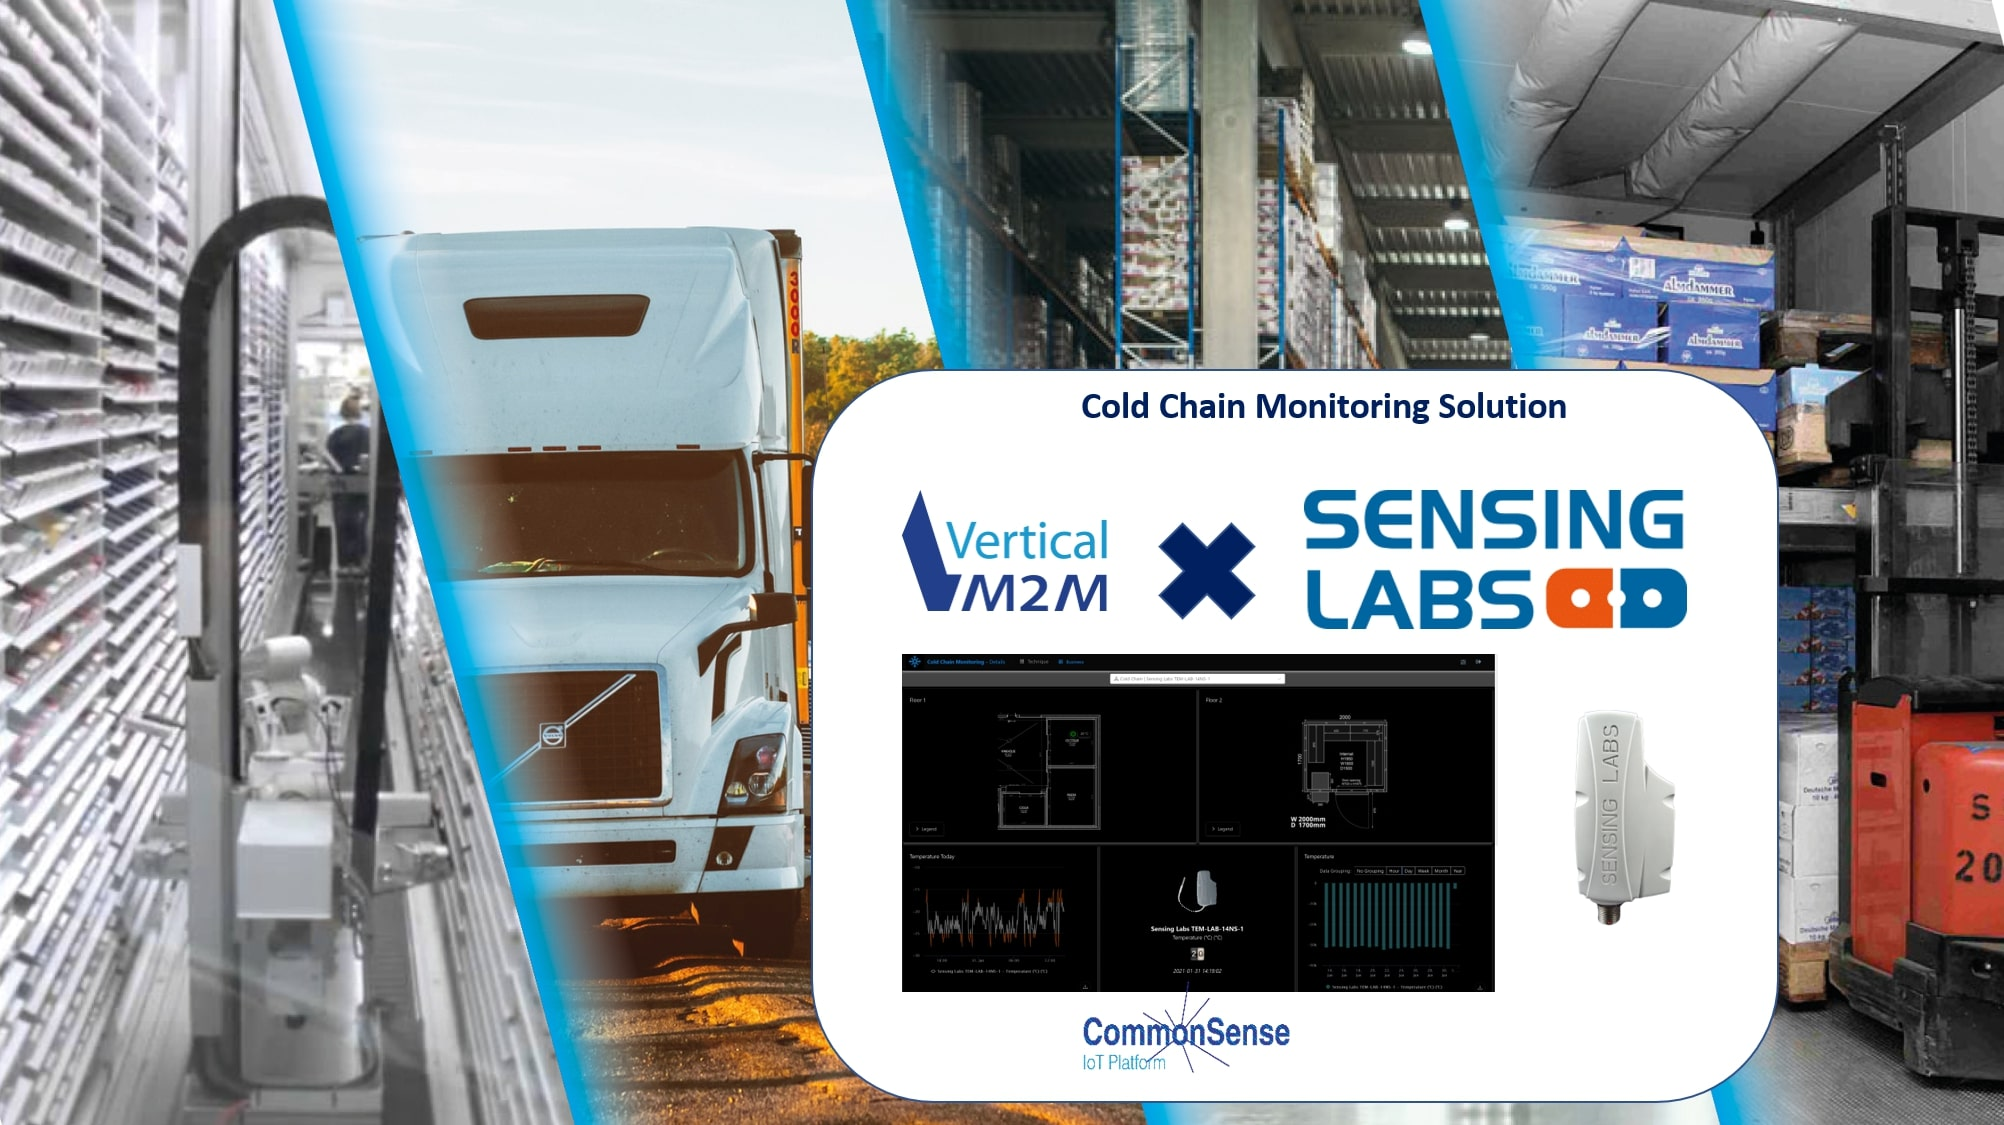 Vertical M2M and SENSING LABS, leading provider of long-range IoT solutions and sensors, team up to deliver an innovative end-to-end cold chain monitoring solution relying on LoRAWAN technologies.